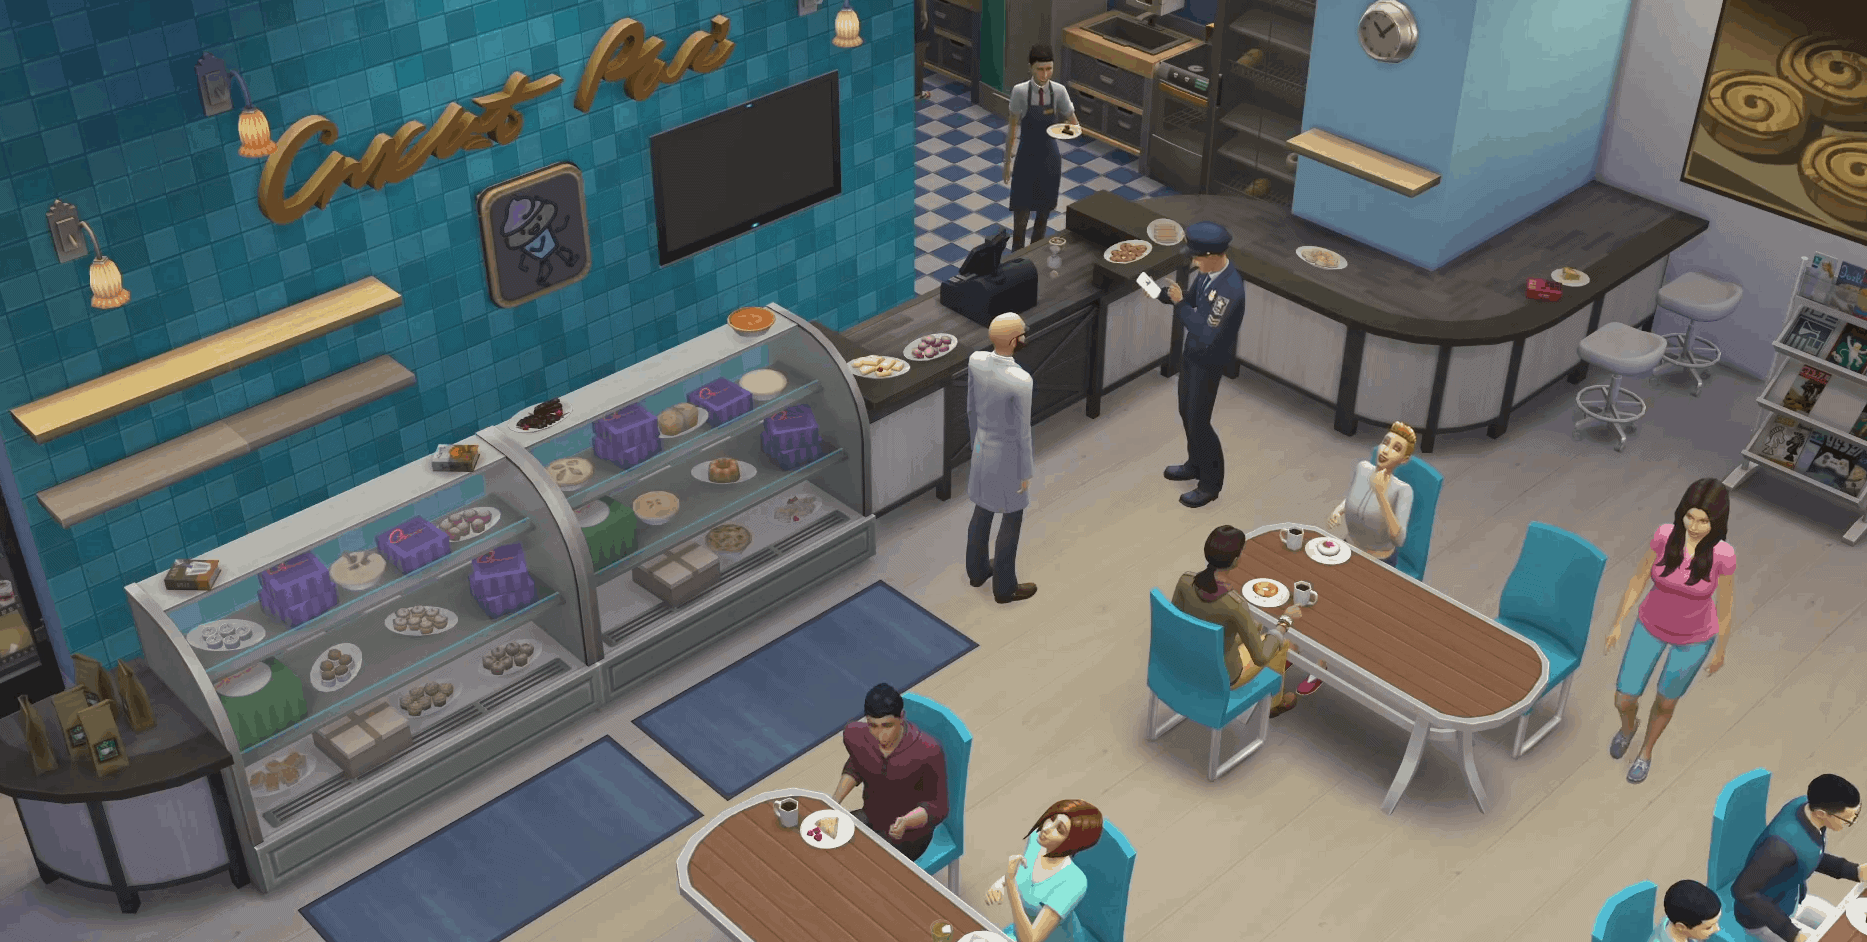 the sims 4 get to work full download pc game free torrent